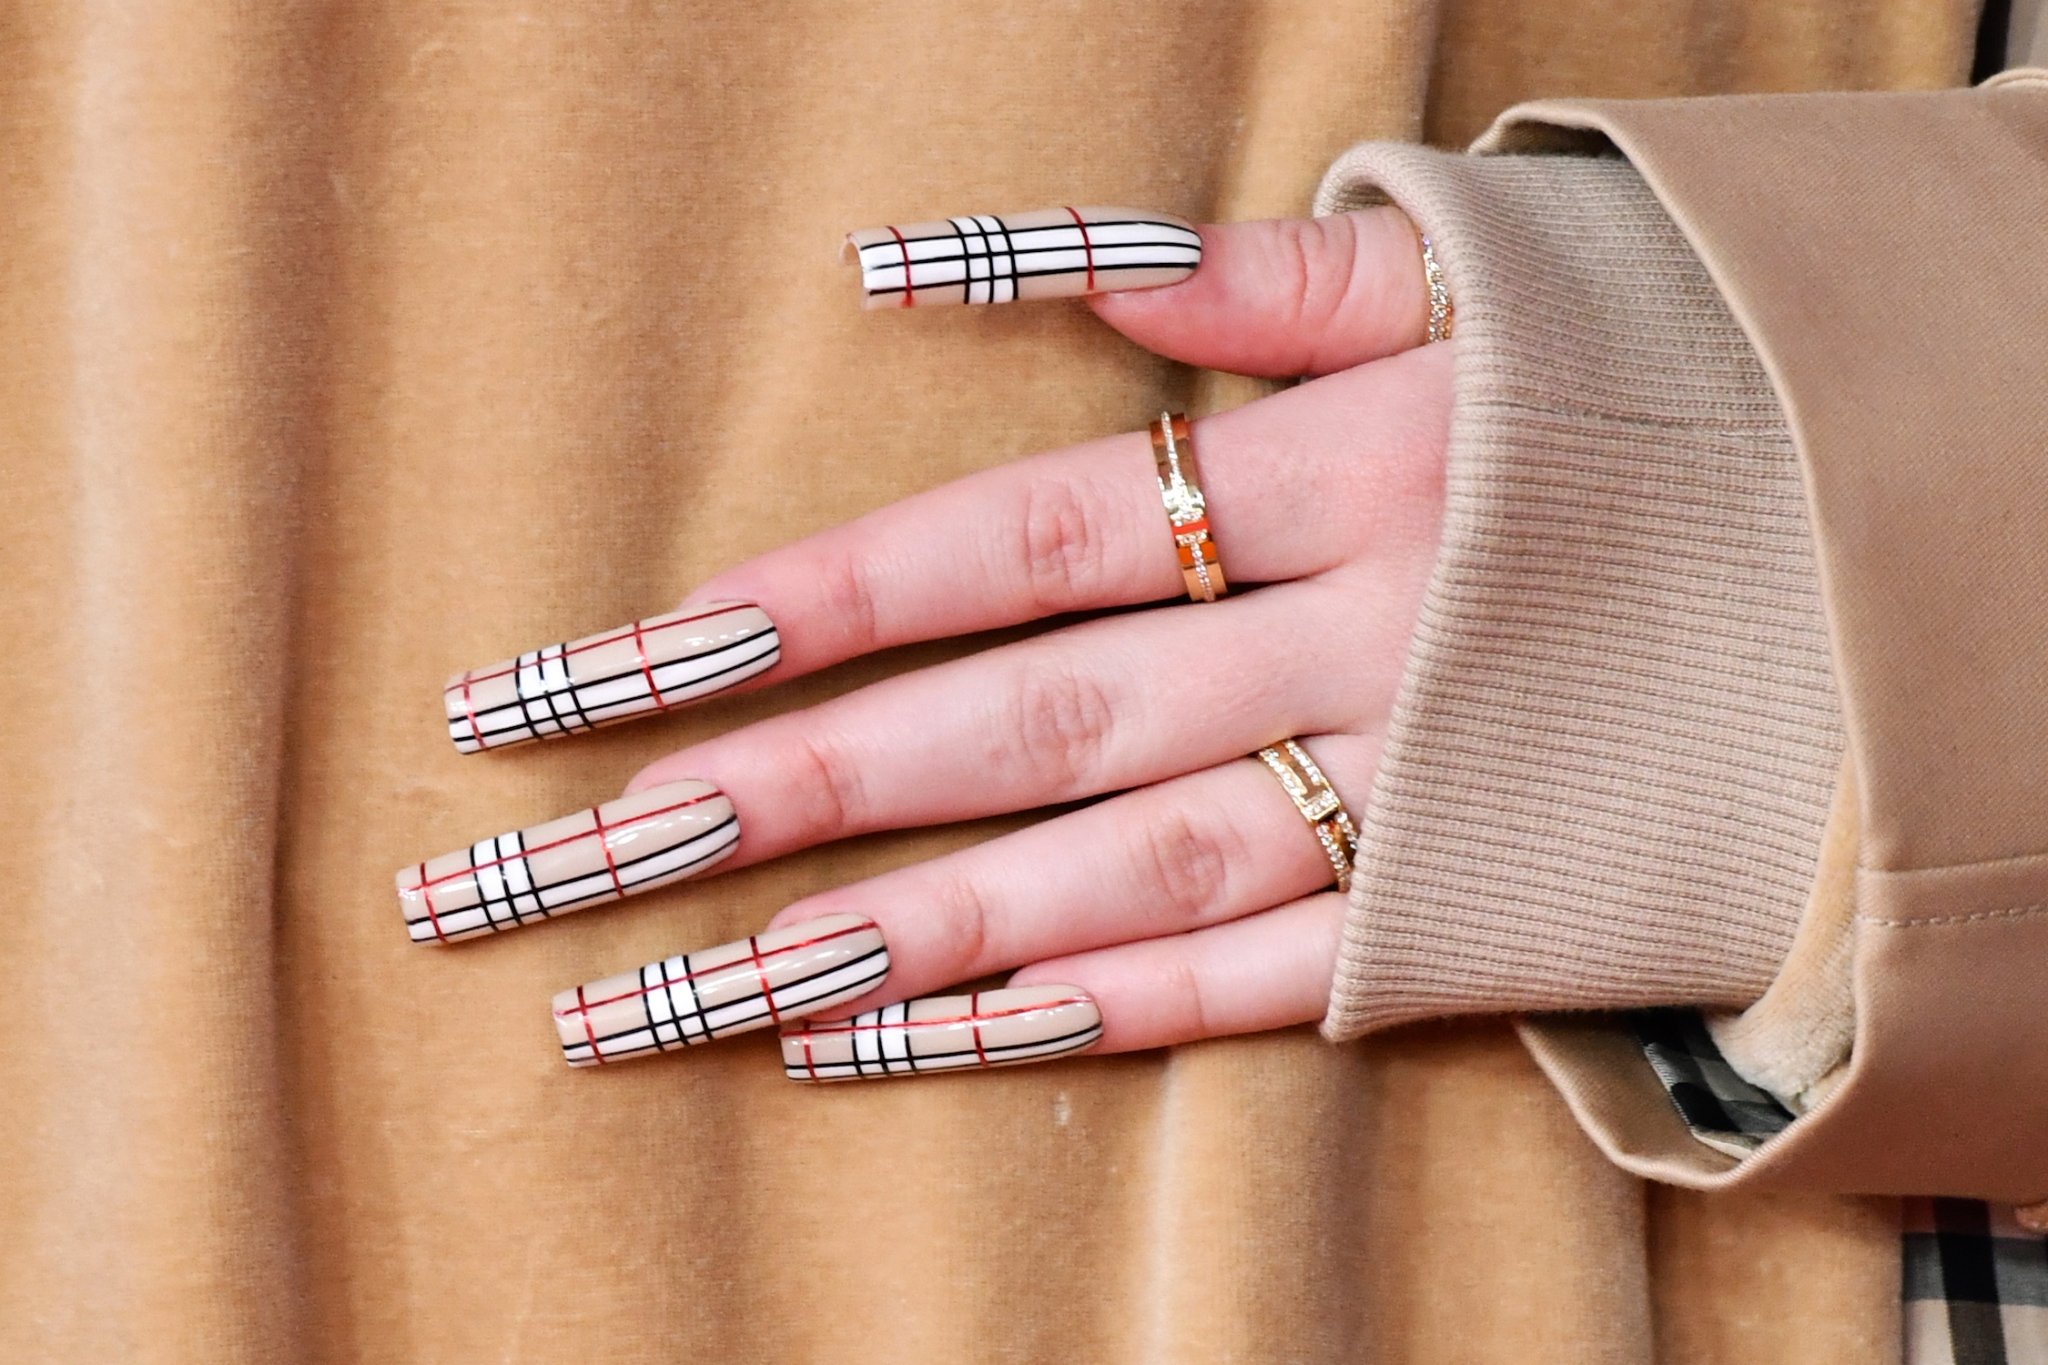 Billie Eilish Burberry Logo Manicure